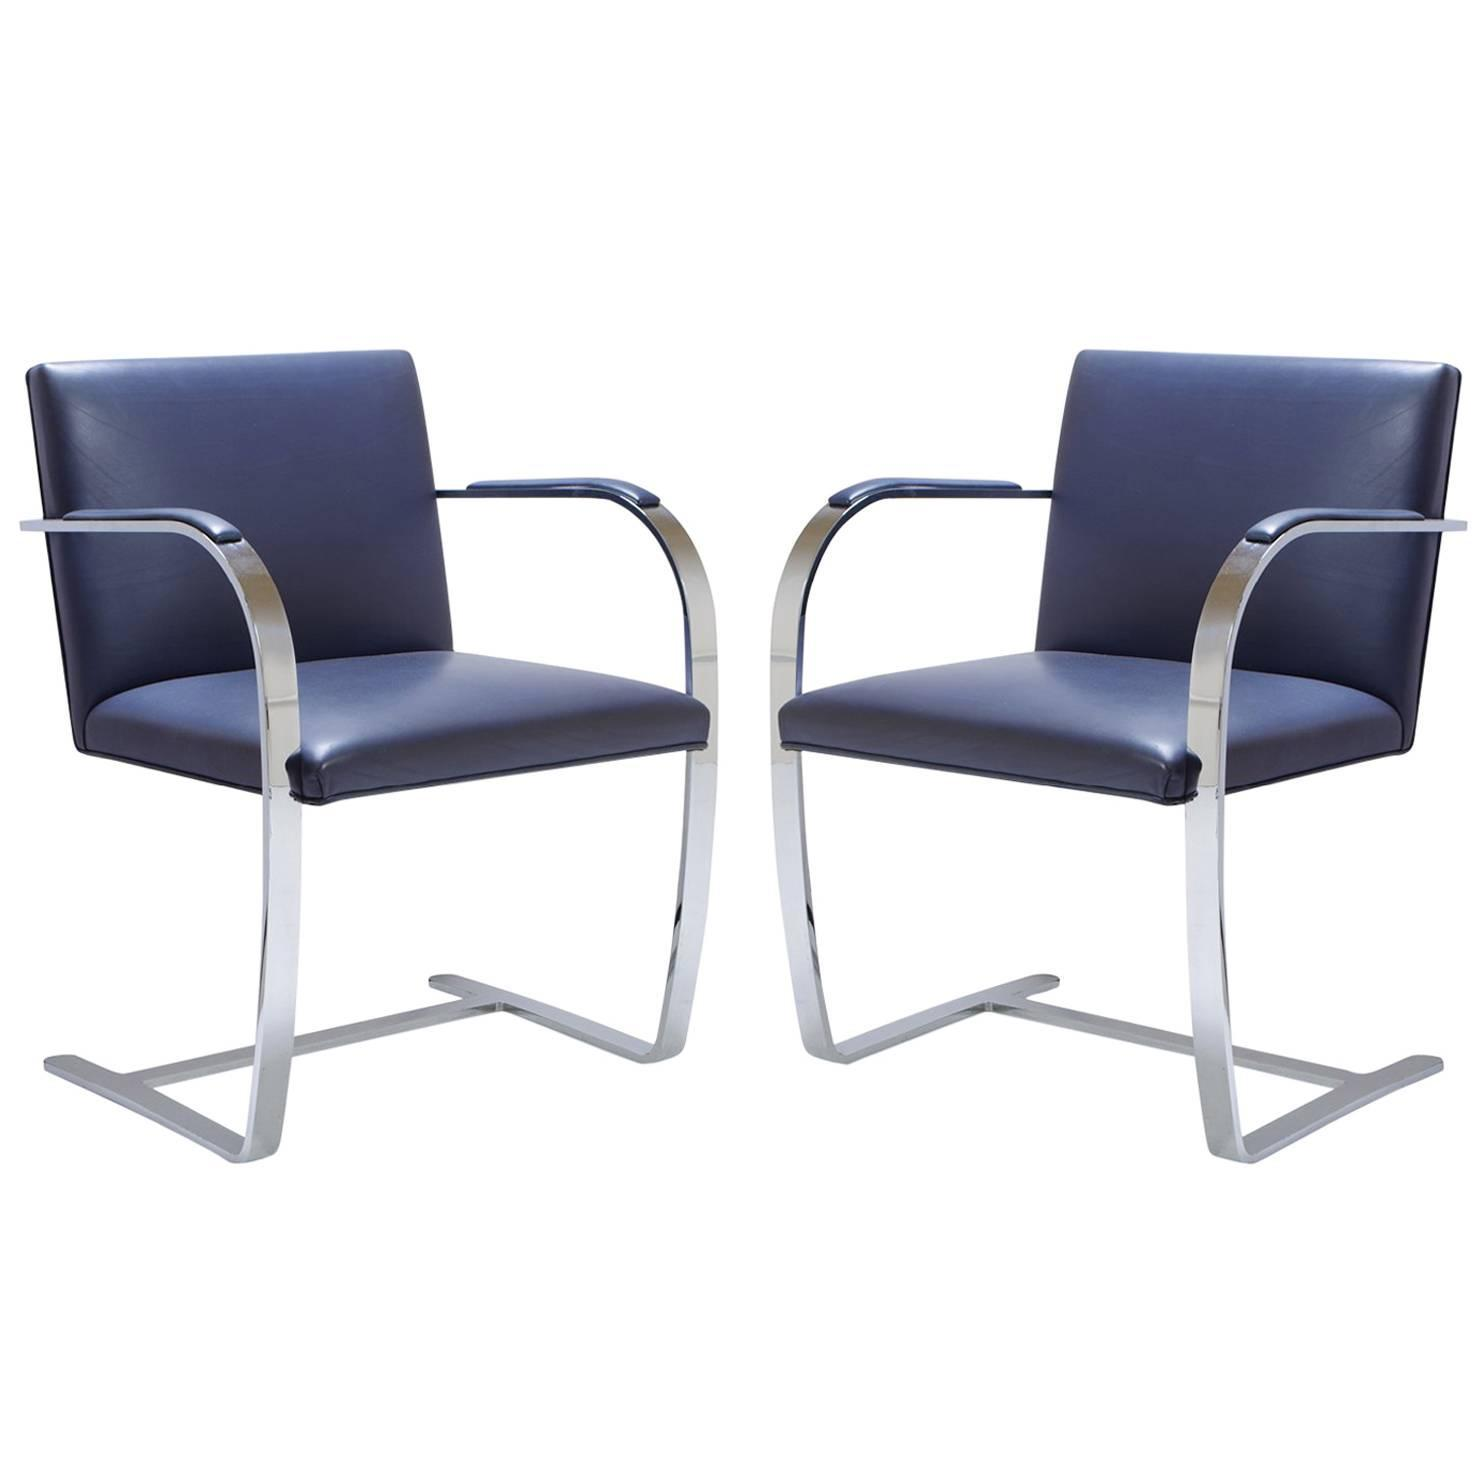 Mies Van Der Rohe for Knoll Brno Flat Bar Chairs in Navy Leather